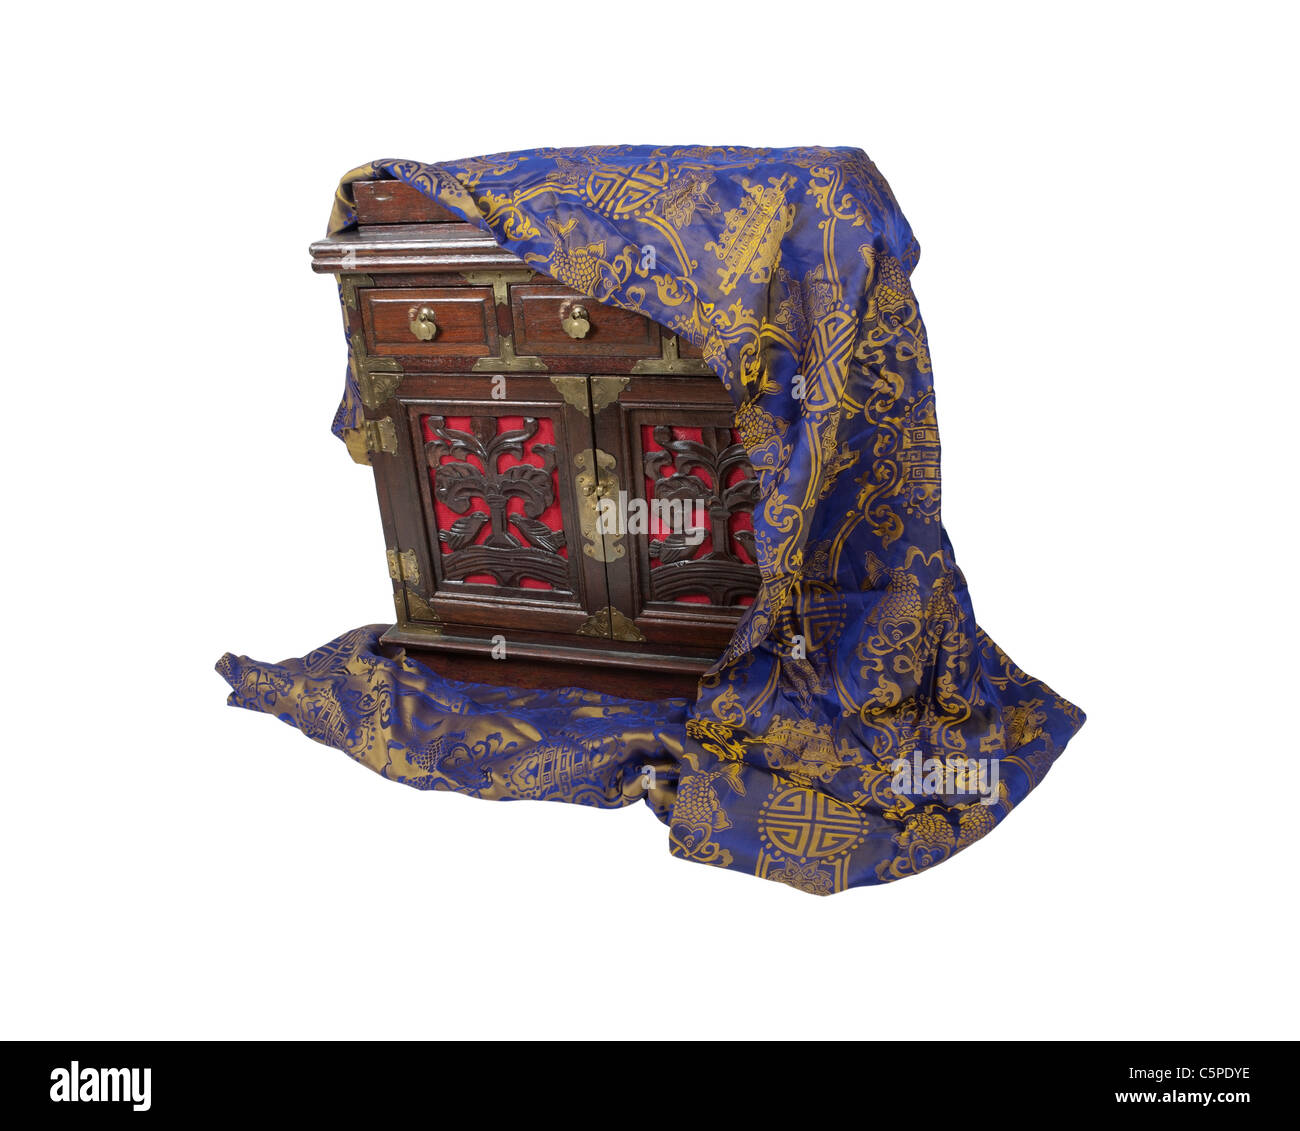 An old chest with small drawers for storing various ingredients covered by a silk scarf - path included - Stock Image